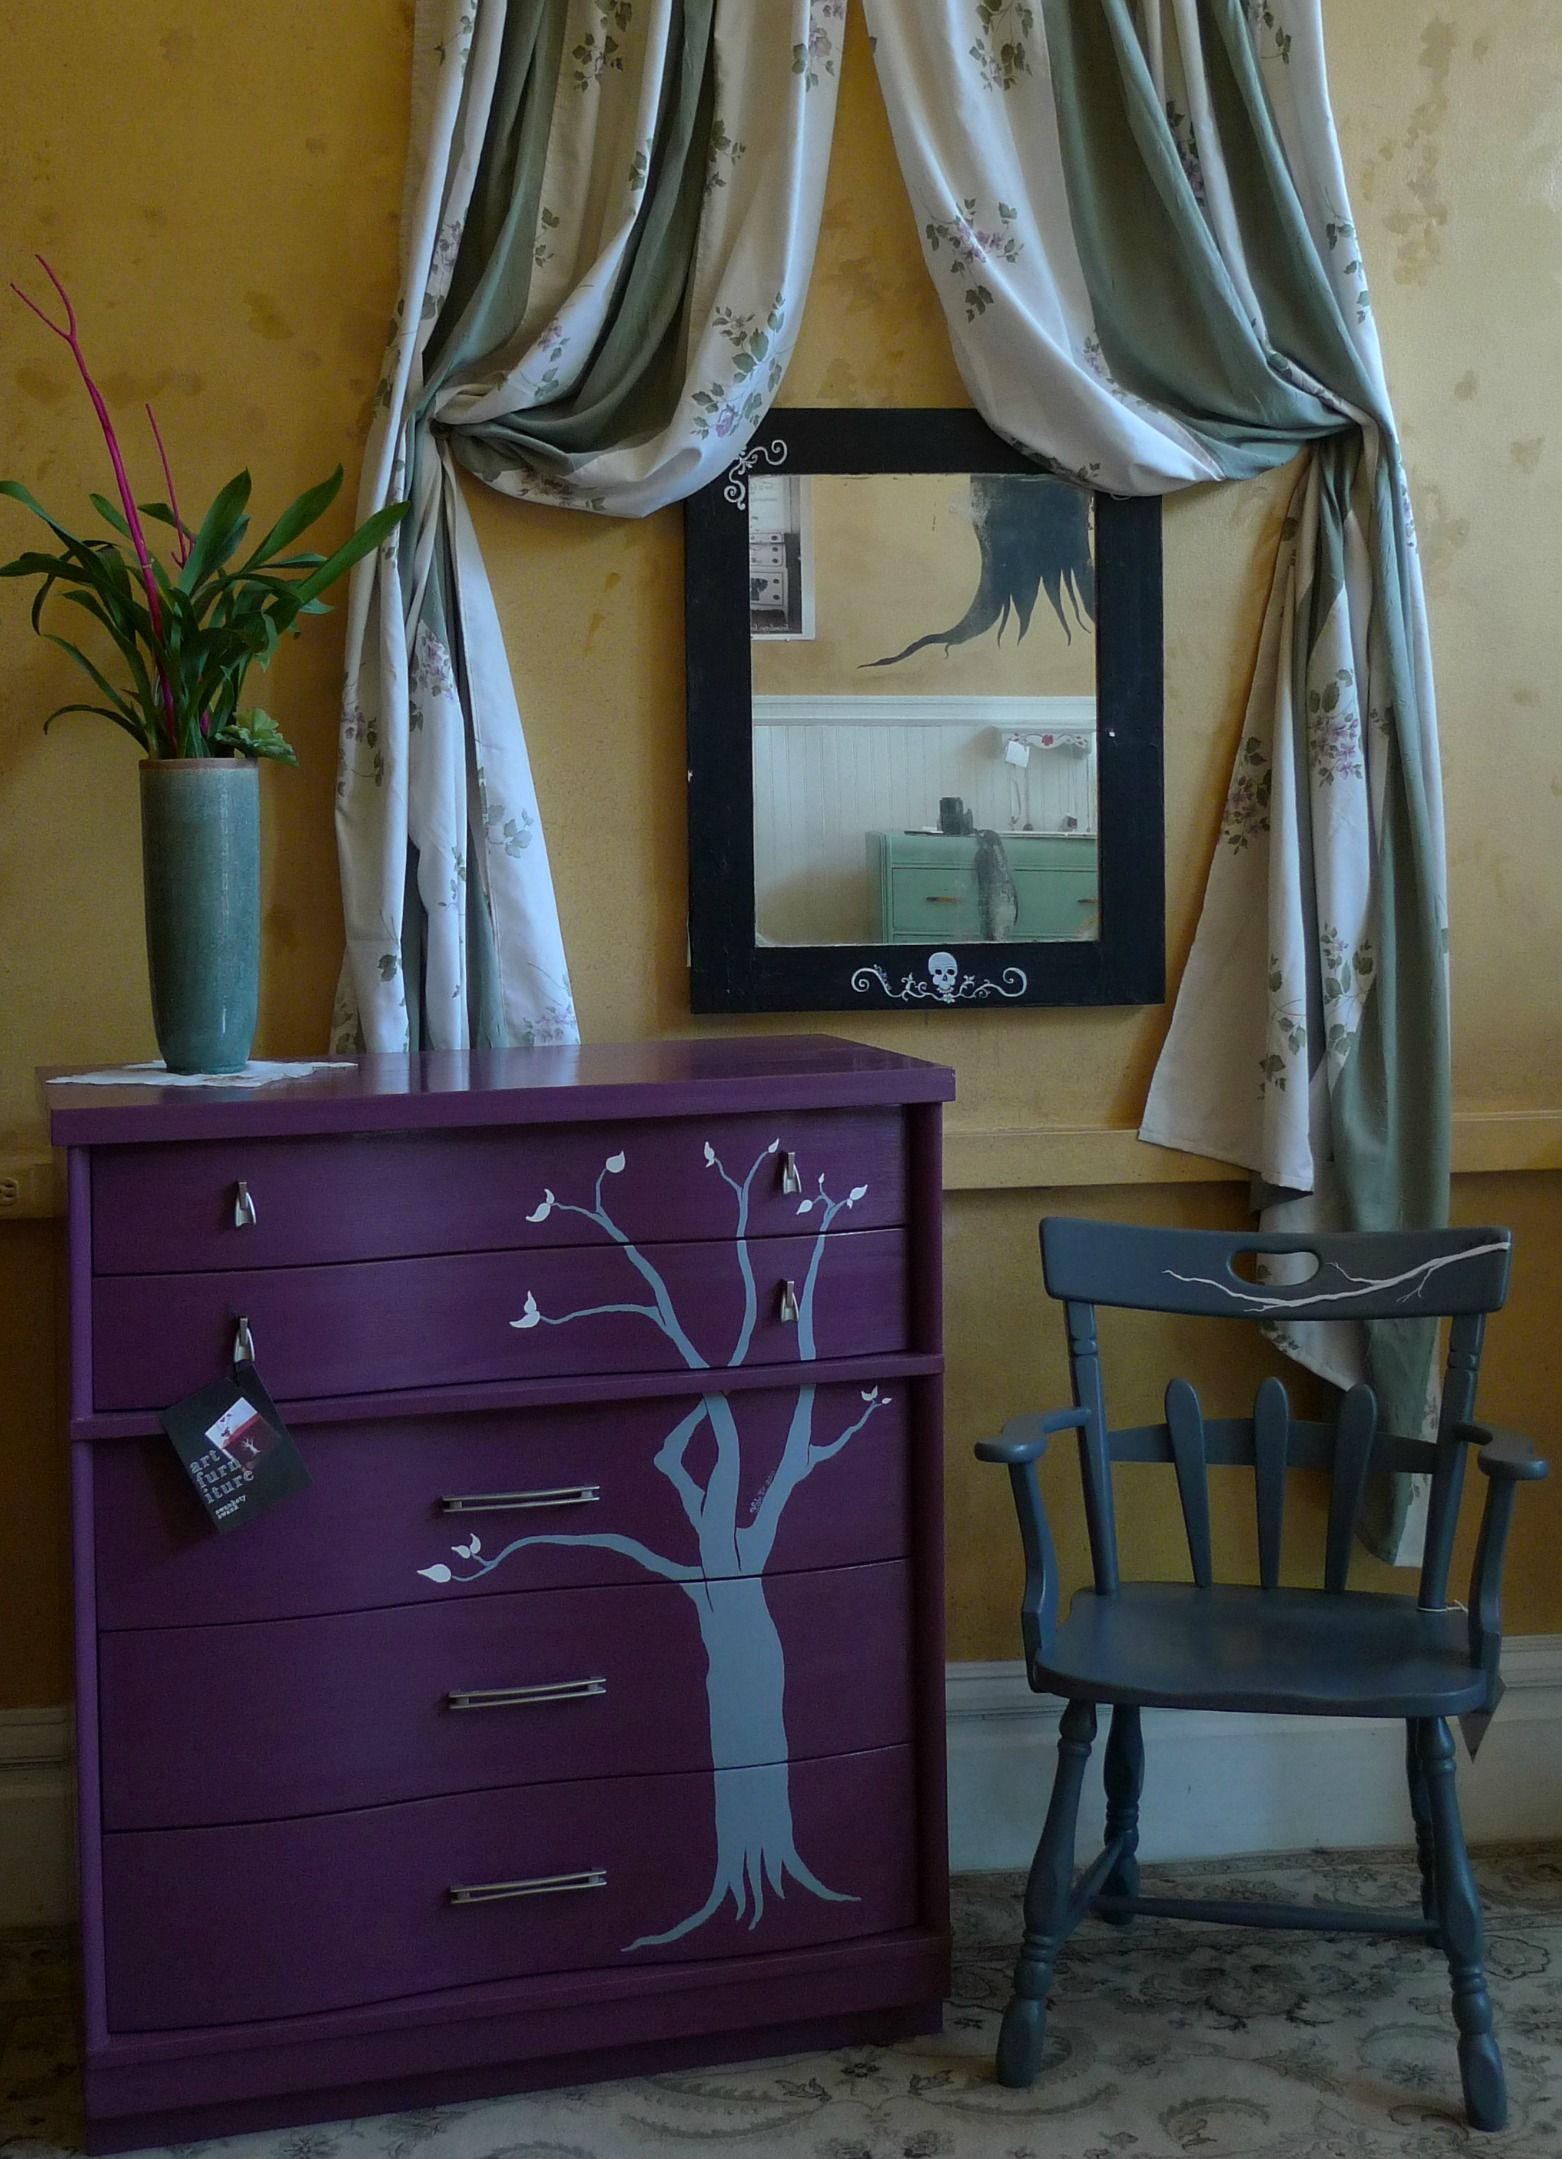 LOVE the plum purple and grey We could paint a dresser for you